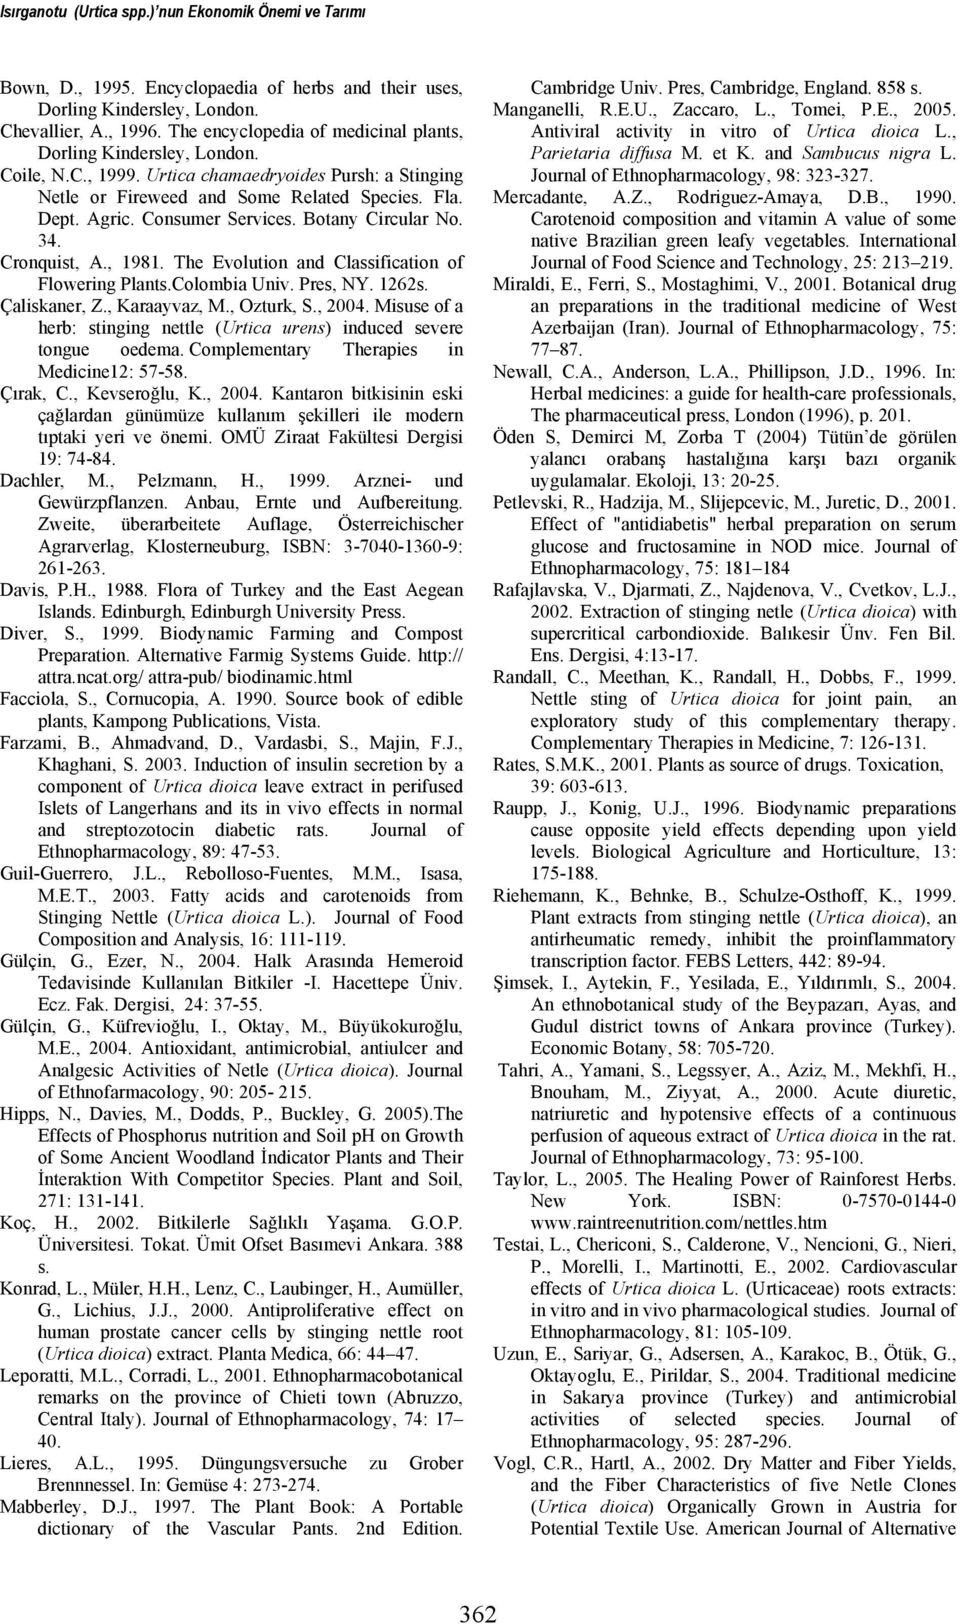 Consumer Services. Botany Circular No. 34. Cronquist, A., 1981. The Evolution and Classification of Flowering Plants.Colombia Univ. Pres, NY. 1262s. Çaliskaner, Z., Karaayvaz, M., Ozturk, S., 2004.